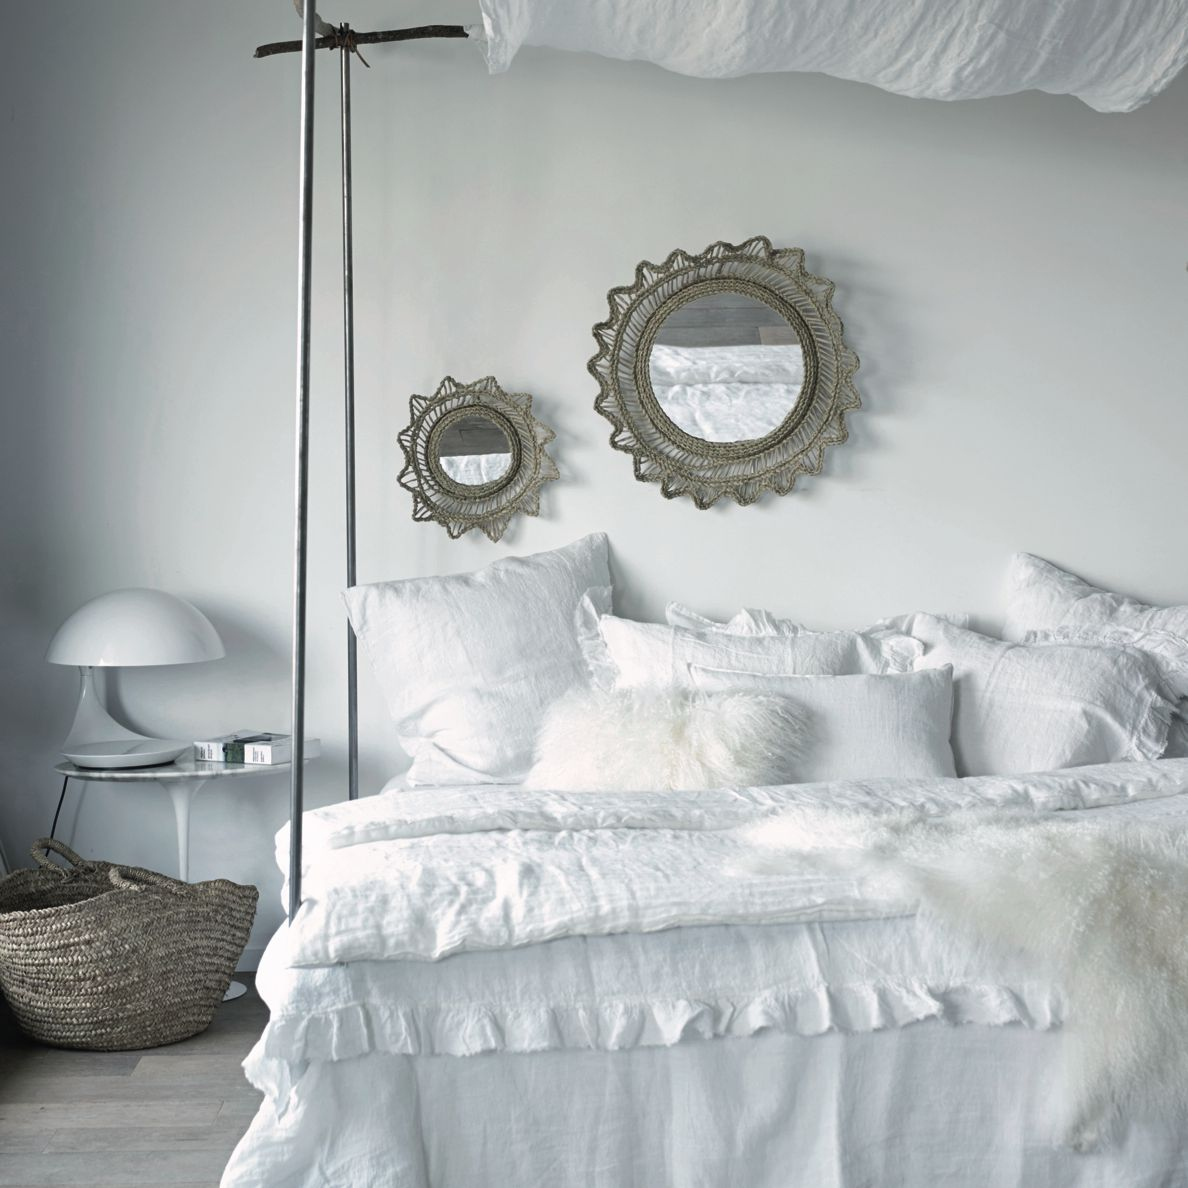 White bedroom with ruffled bedding